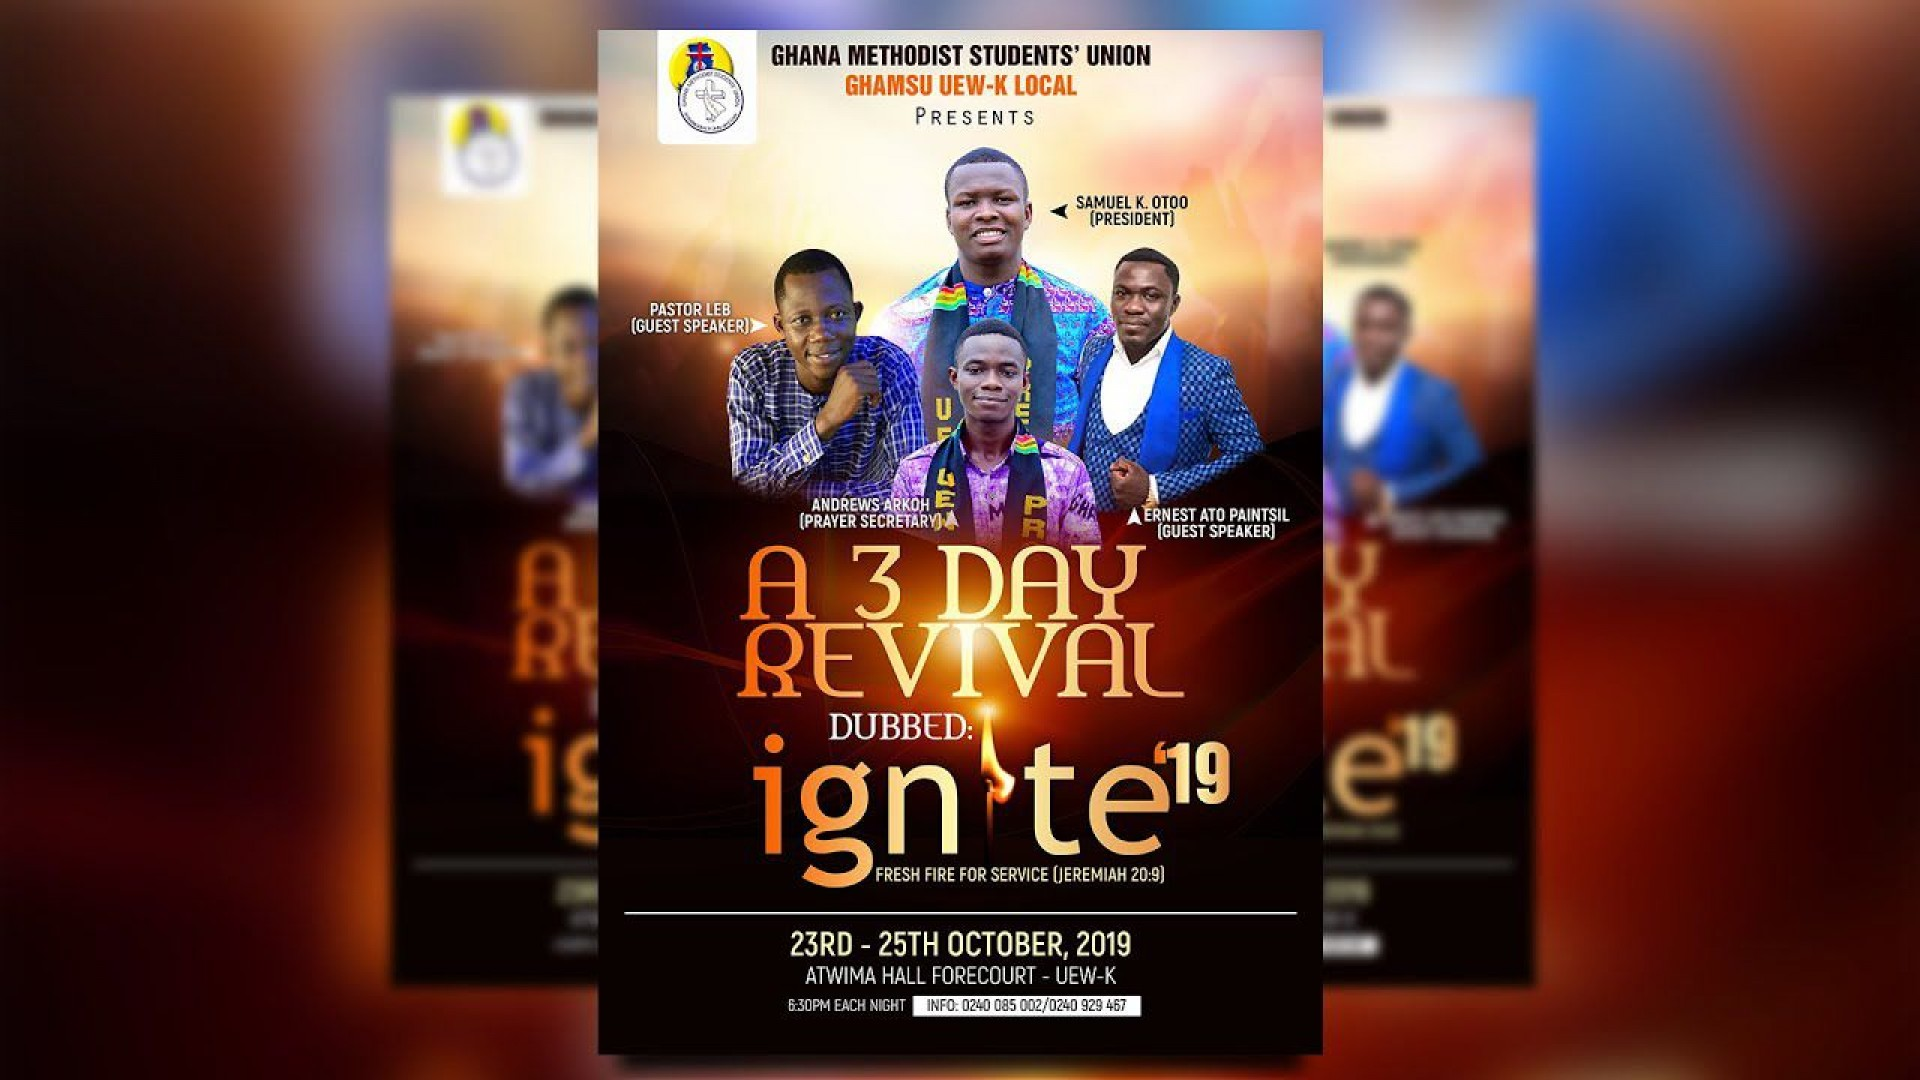 008 Top Church Flyer Template Photoshop Free Highest Quality  Psd1920